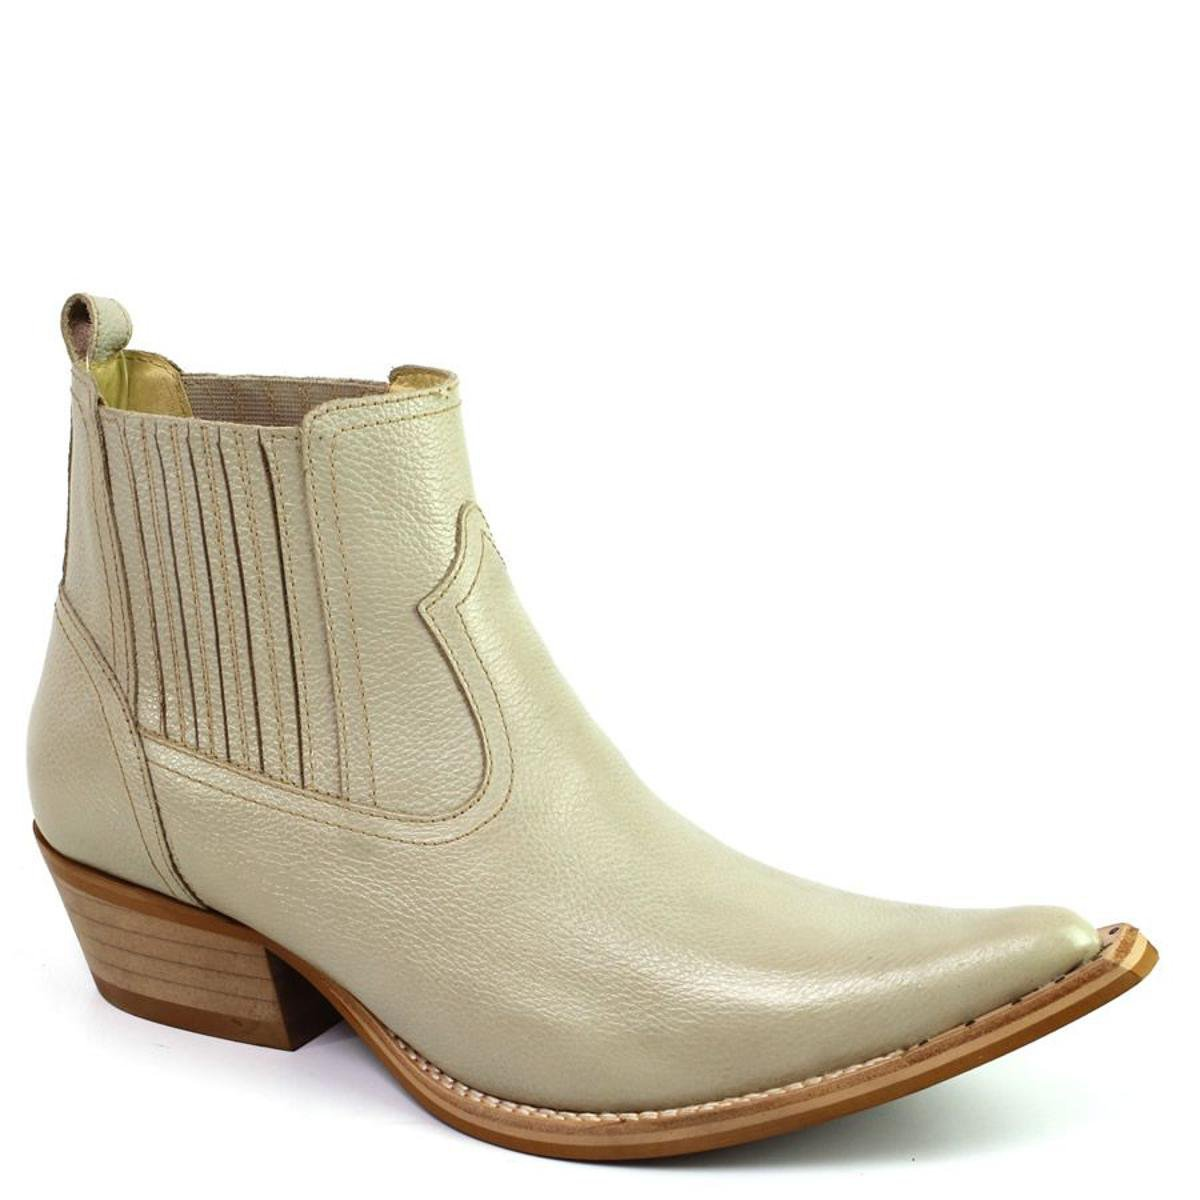 Top Bota Shoes Cinza Country Country Franca Shoes Franca Bota Top wH4xxqXI